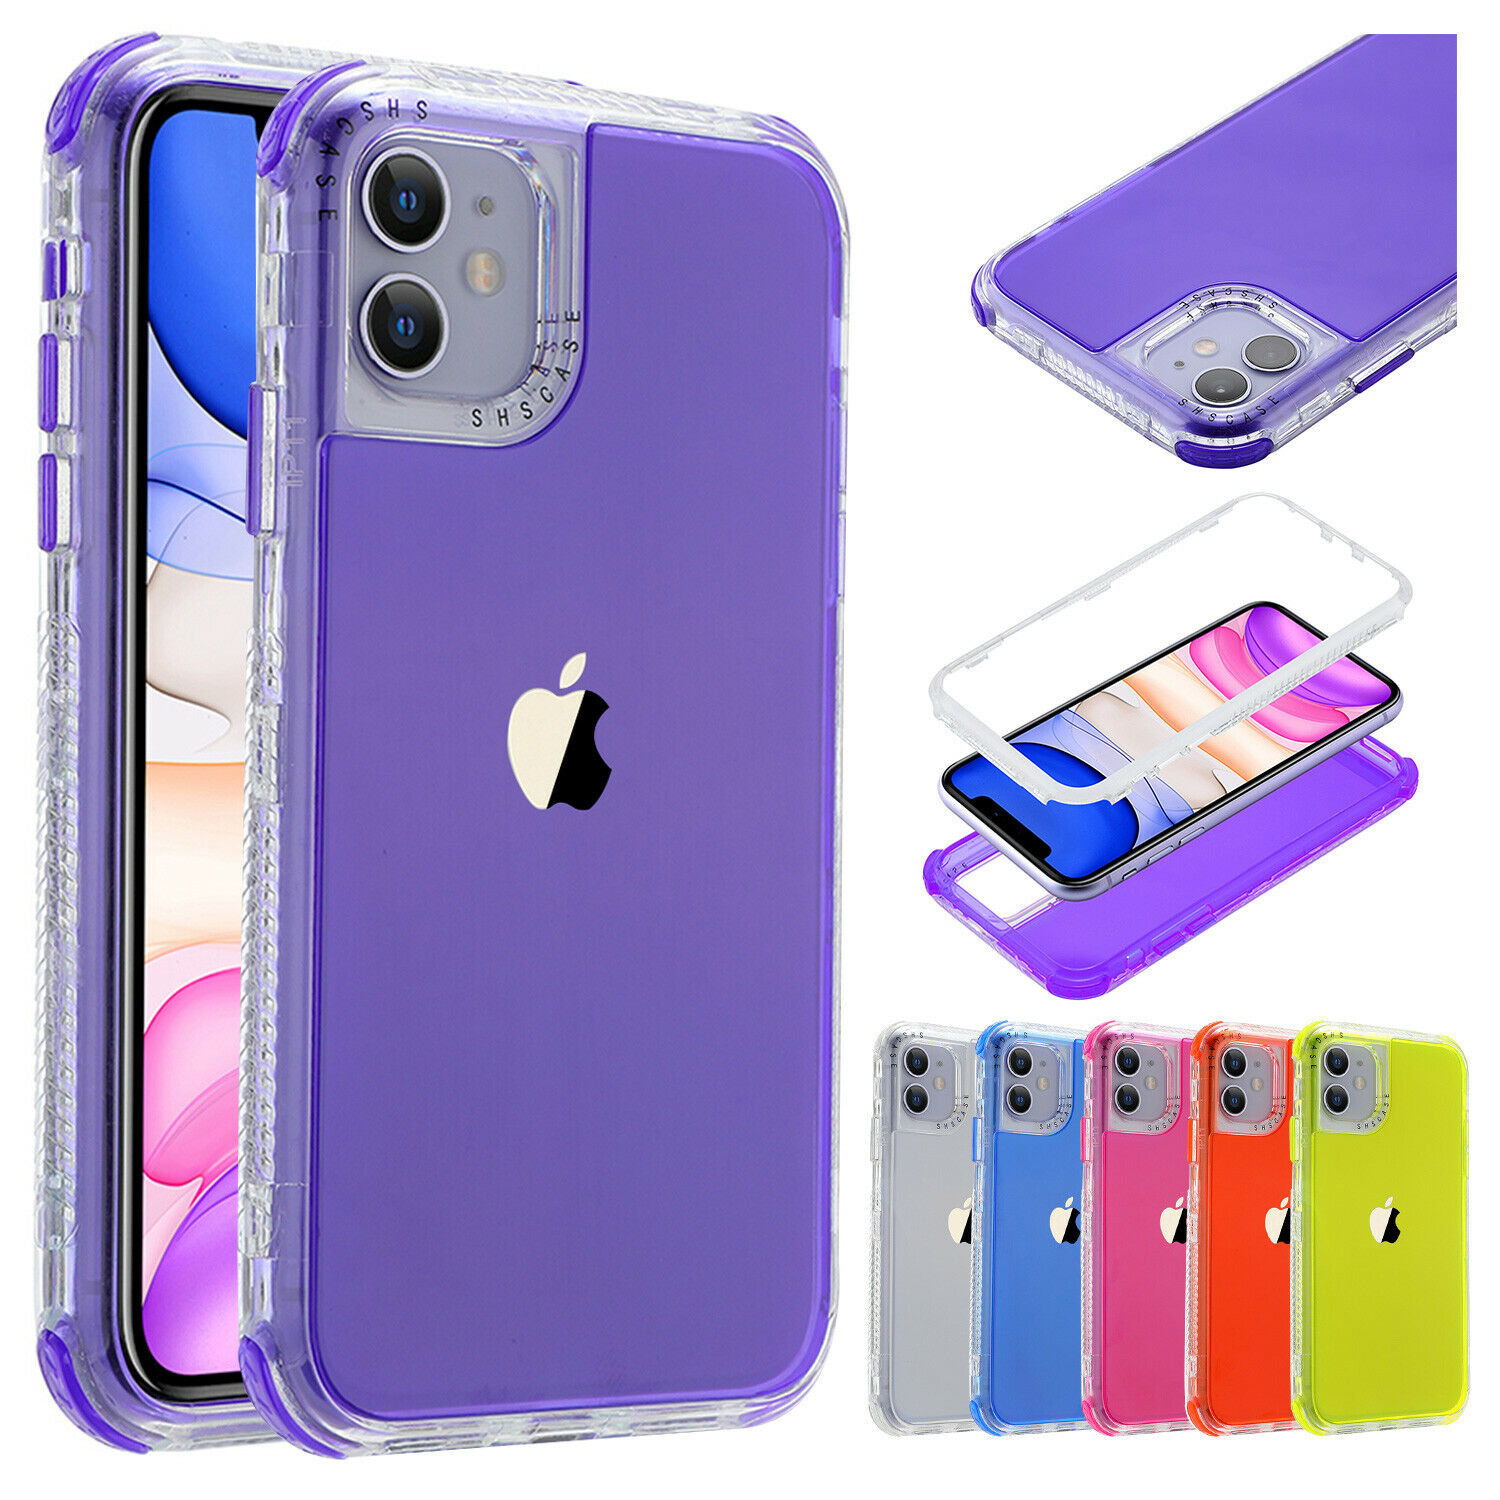 Clear OCYCLONE Clear iPhone 11 Pro Max Case Tempered Glass Back with Soft TPU Bumper Shockproof Slim Thin Protective Case for New iPhone 11 Pro Max 6.5 inch 2019 Release Crystal Clear